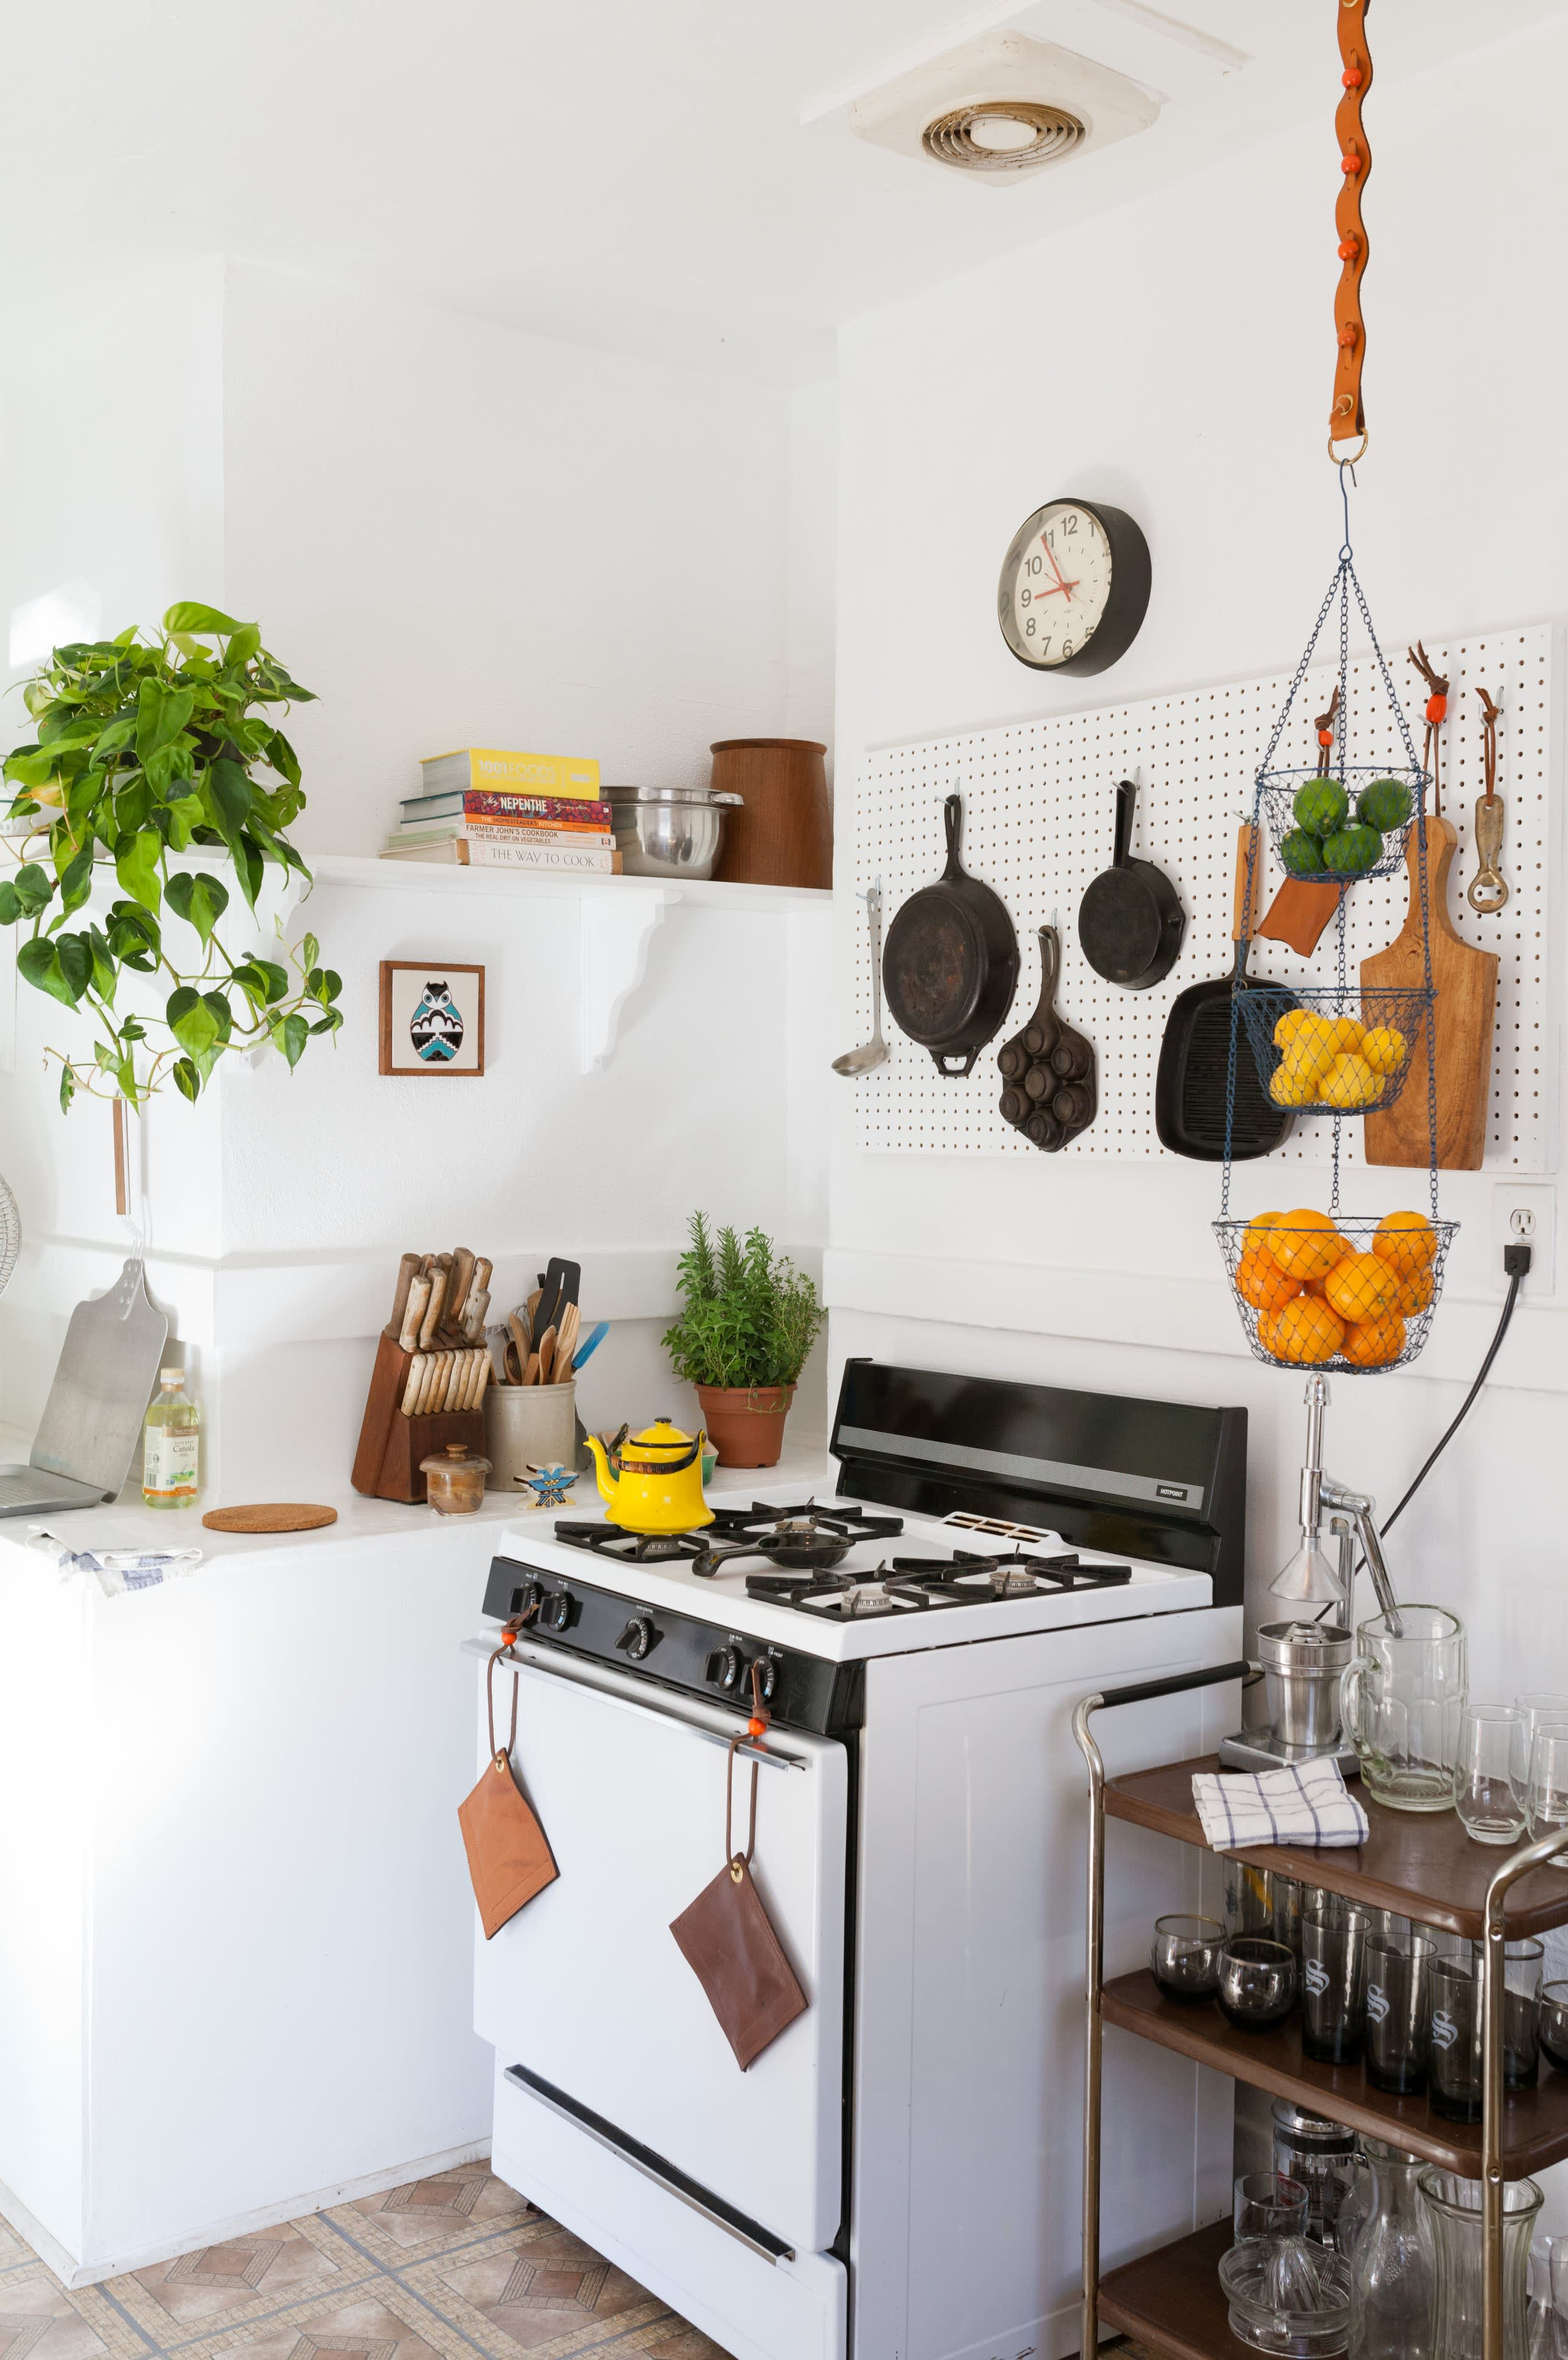 Where I Cook: Leather Craftsman Steven Soria's Rental Kitchen: gallery image 6